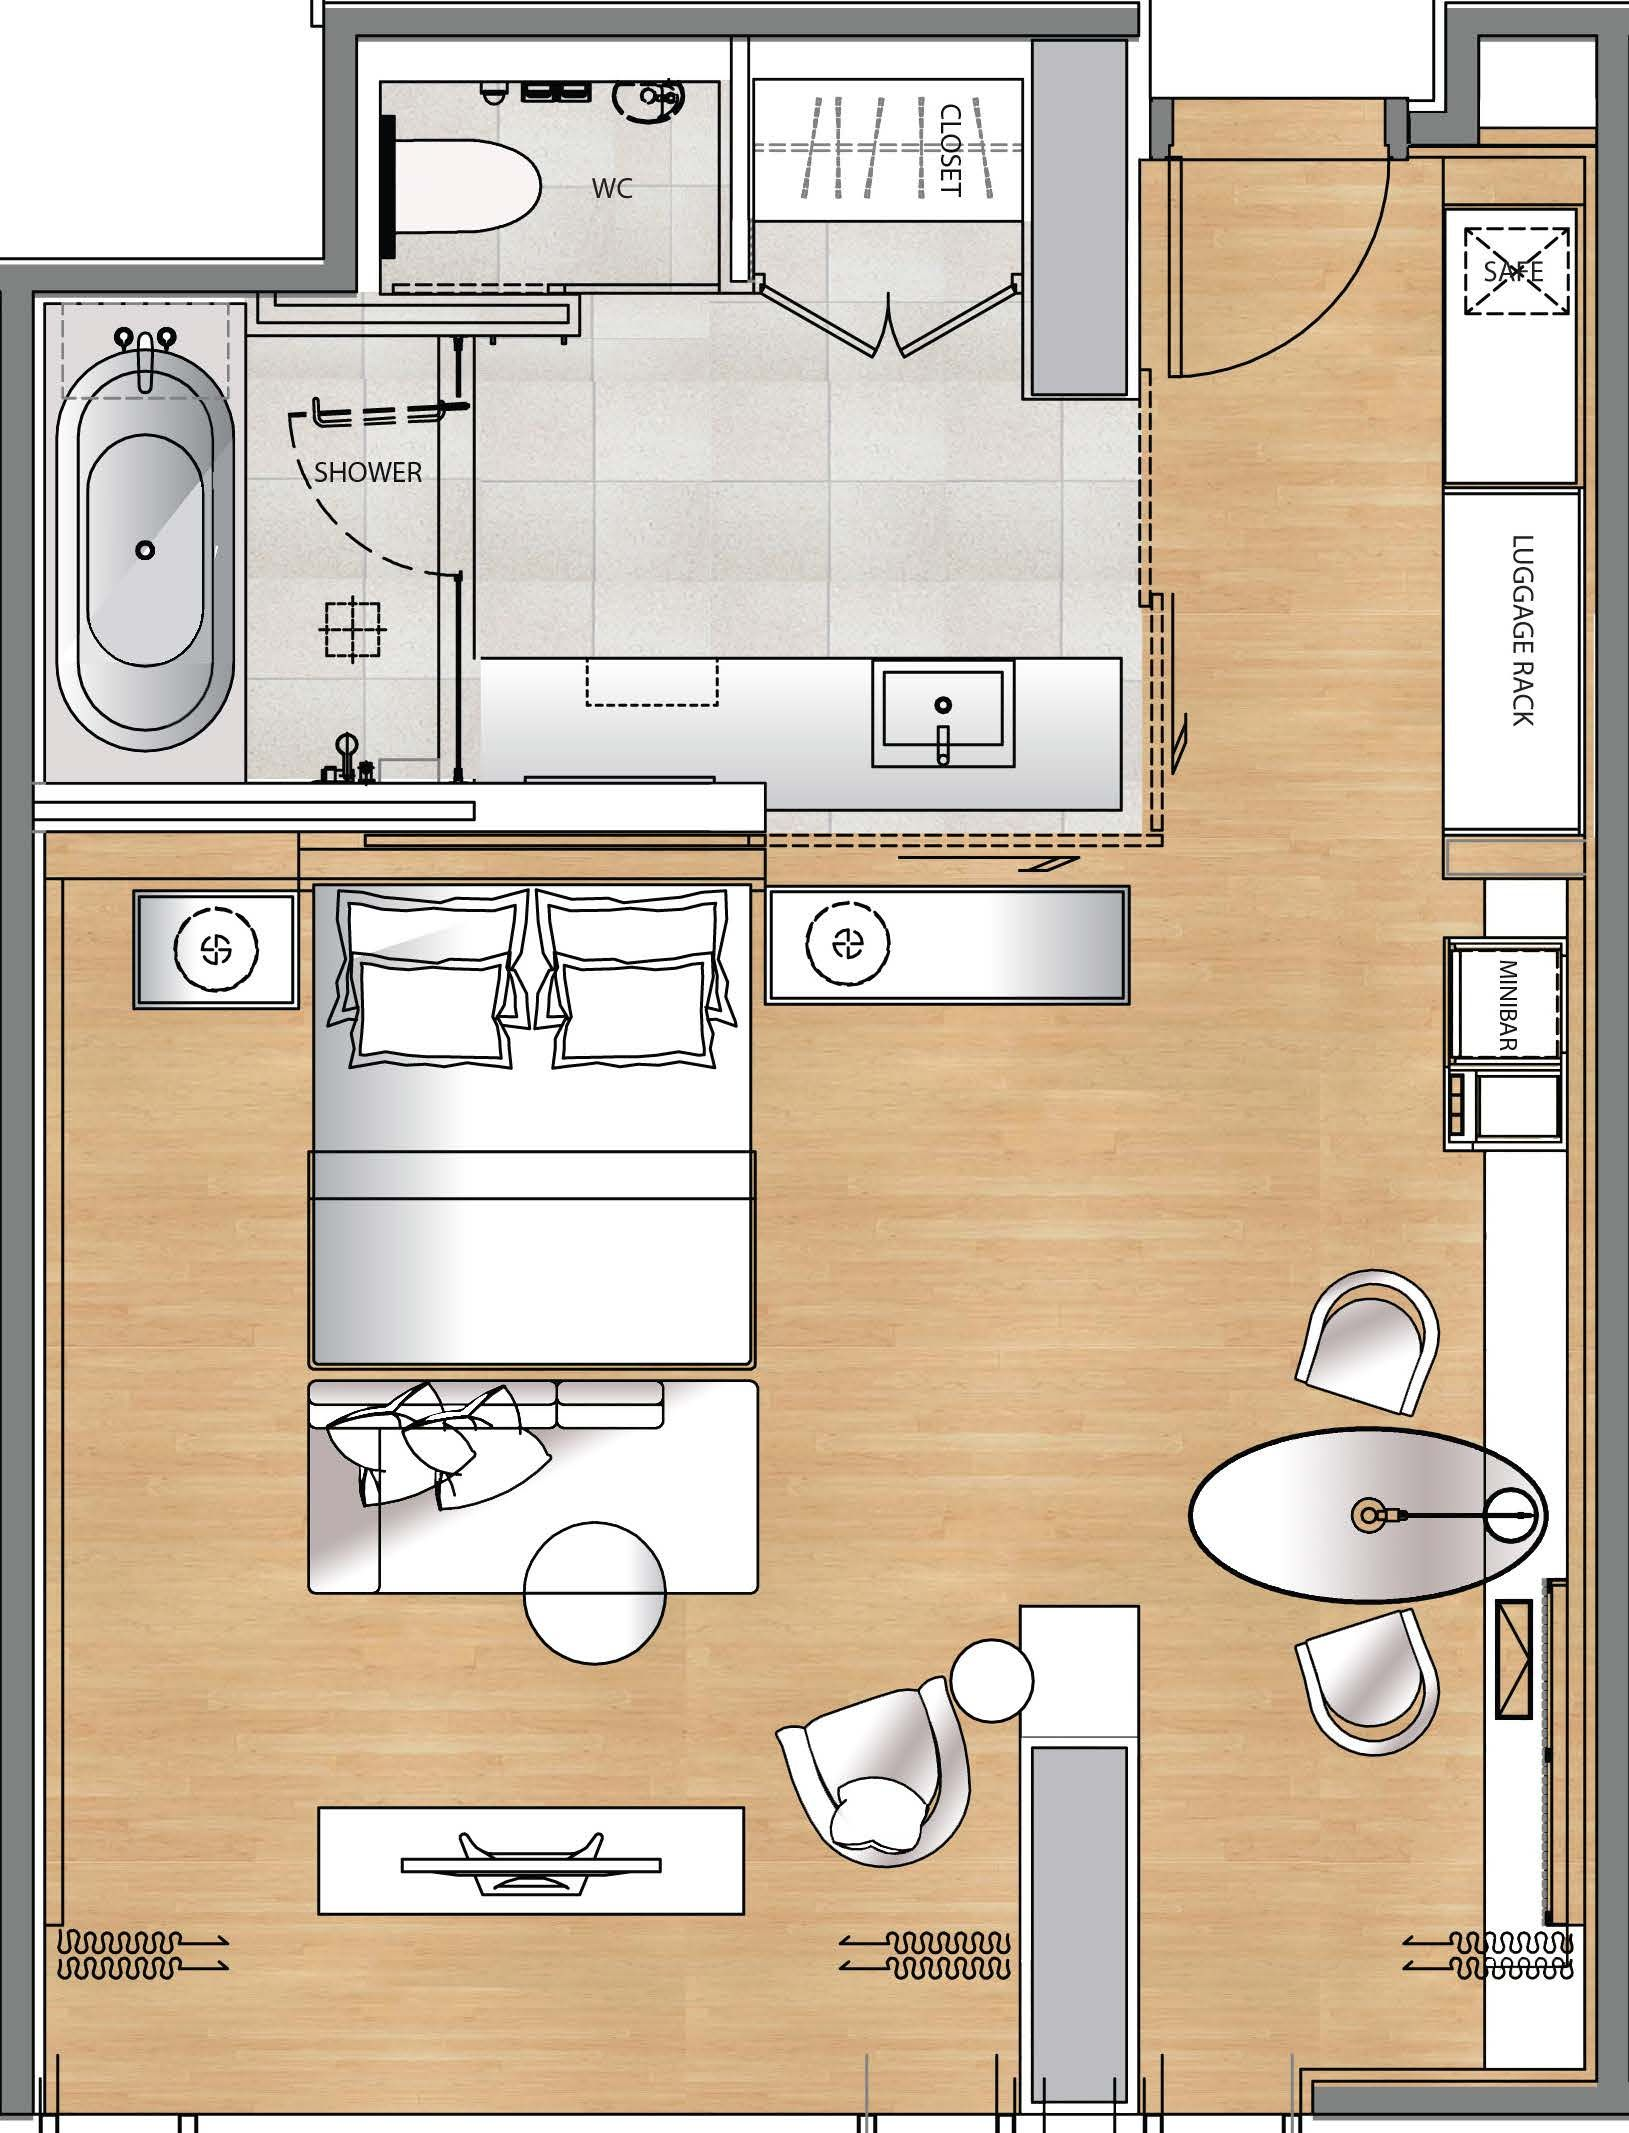 Hotel Bedroom: Hotel Room Plan - Buscar Con Google …